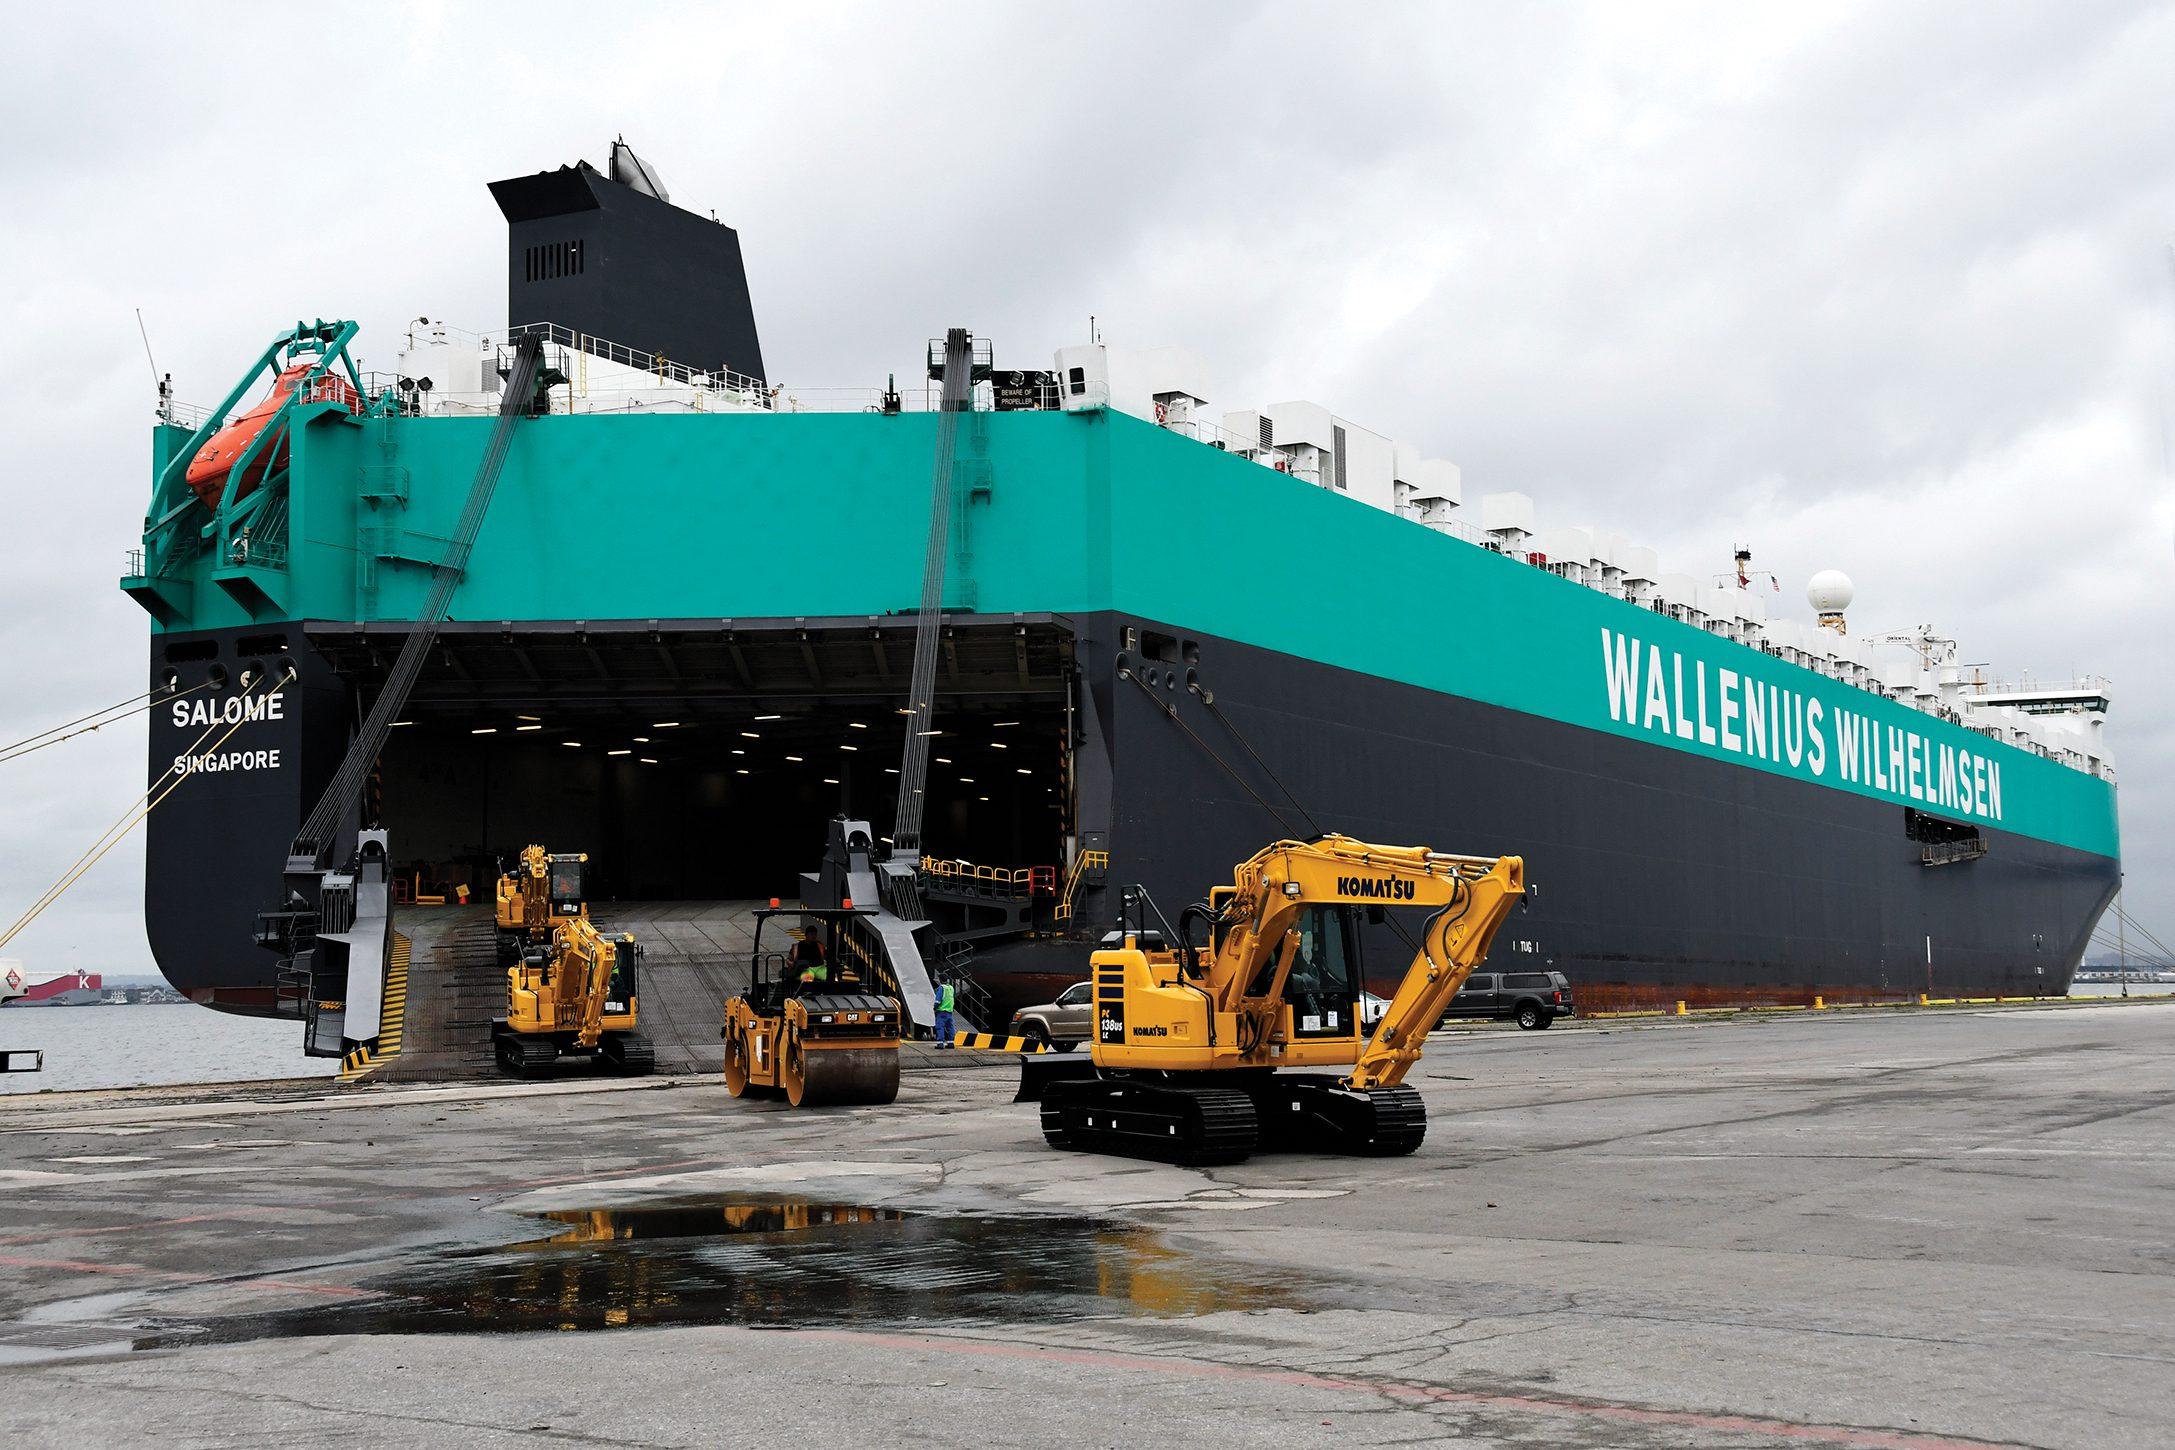 Wallenius Wilhelmsen's Salome Flashes New Colors